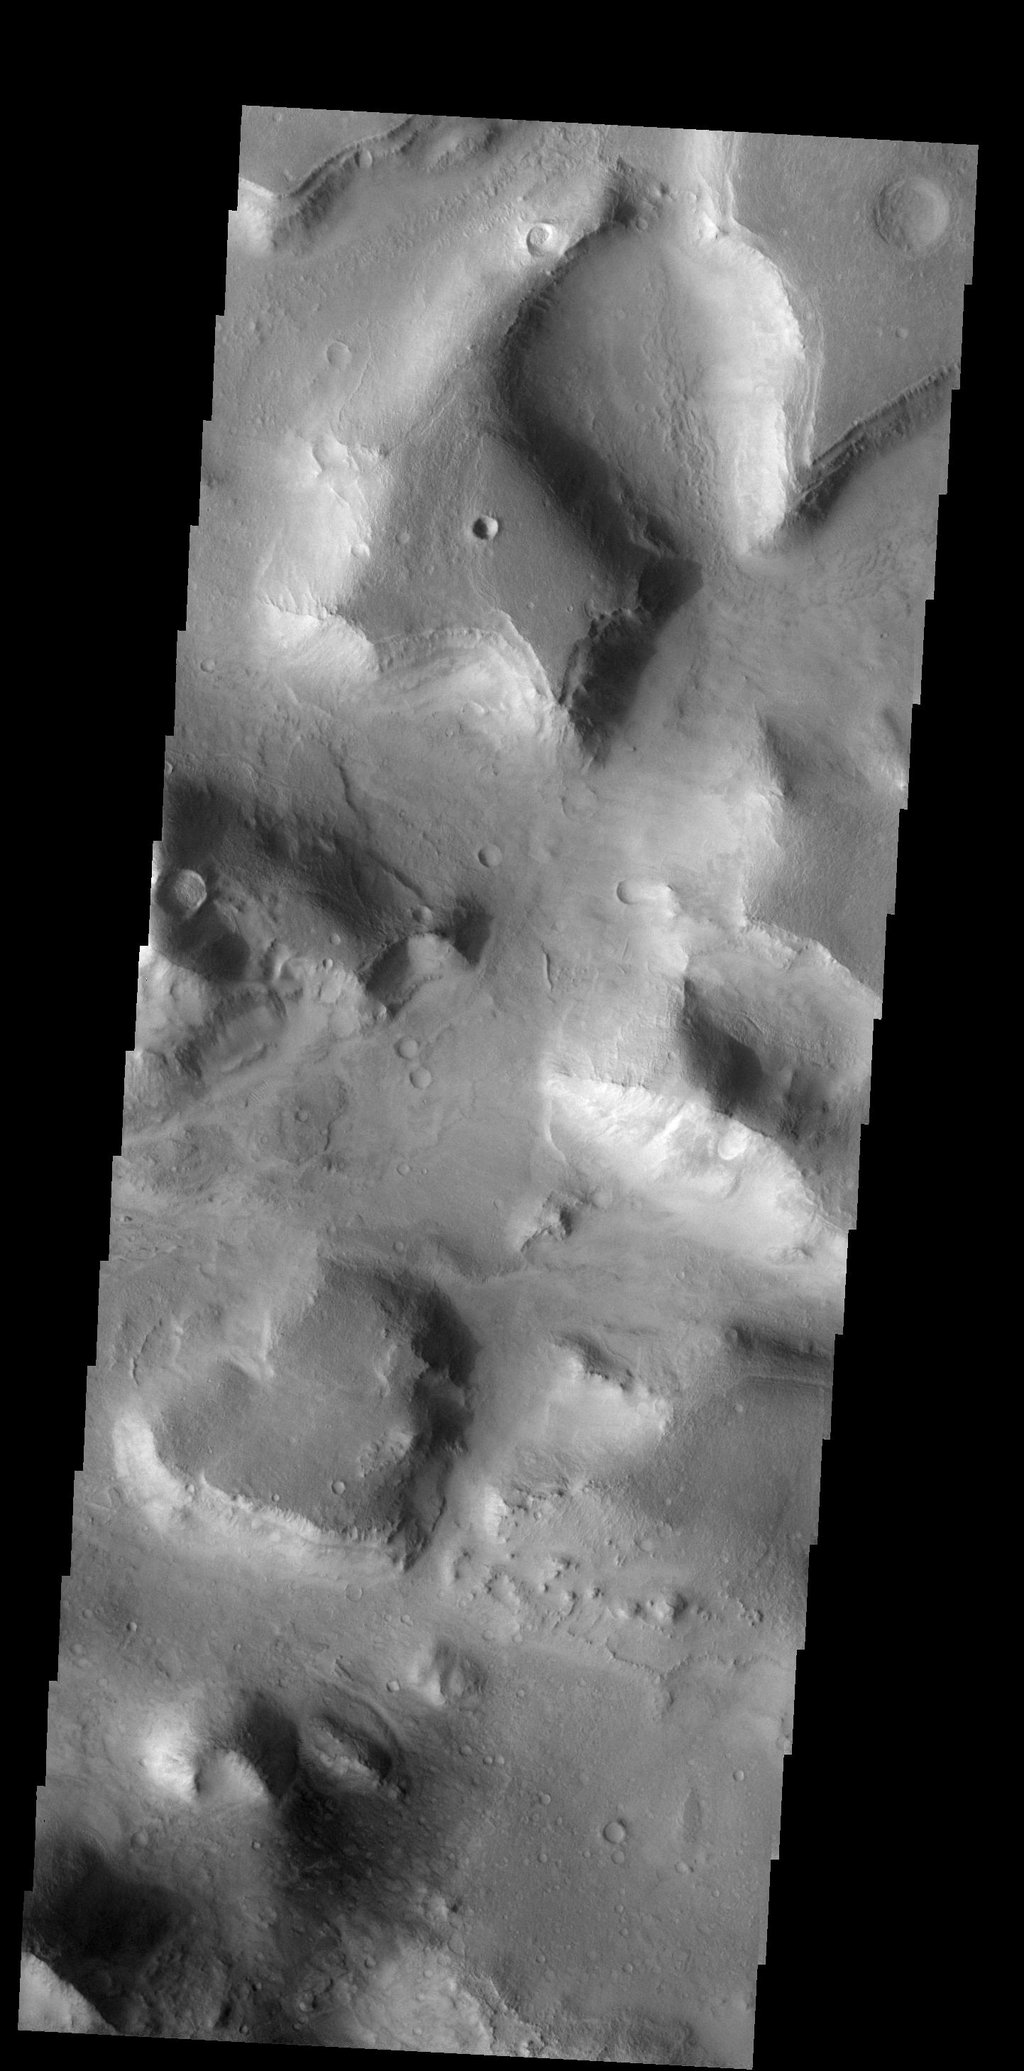 This isolated mesa has an almost heart-shaped margin. Happy Valentine's Day from Mars as seen by NASA's 2001 Mars Odyssey.